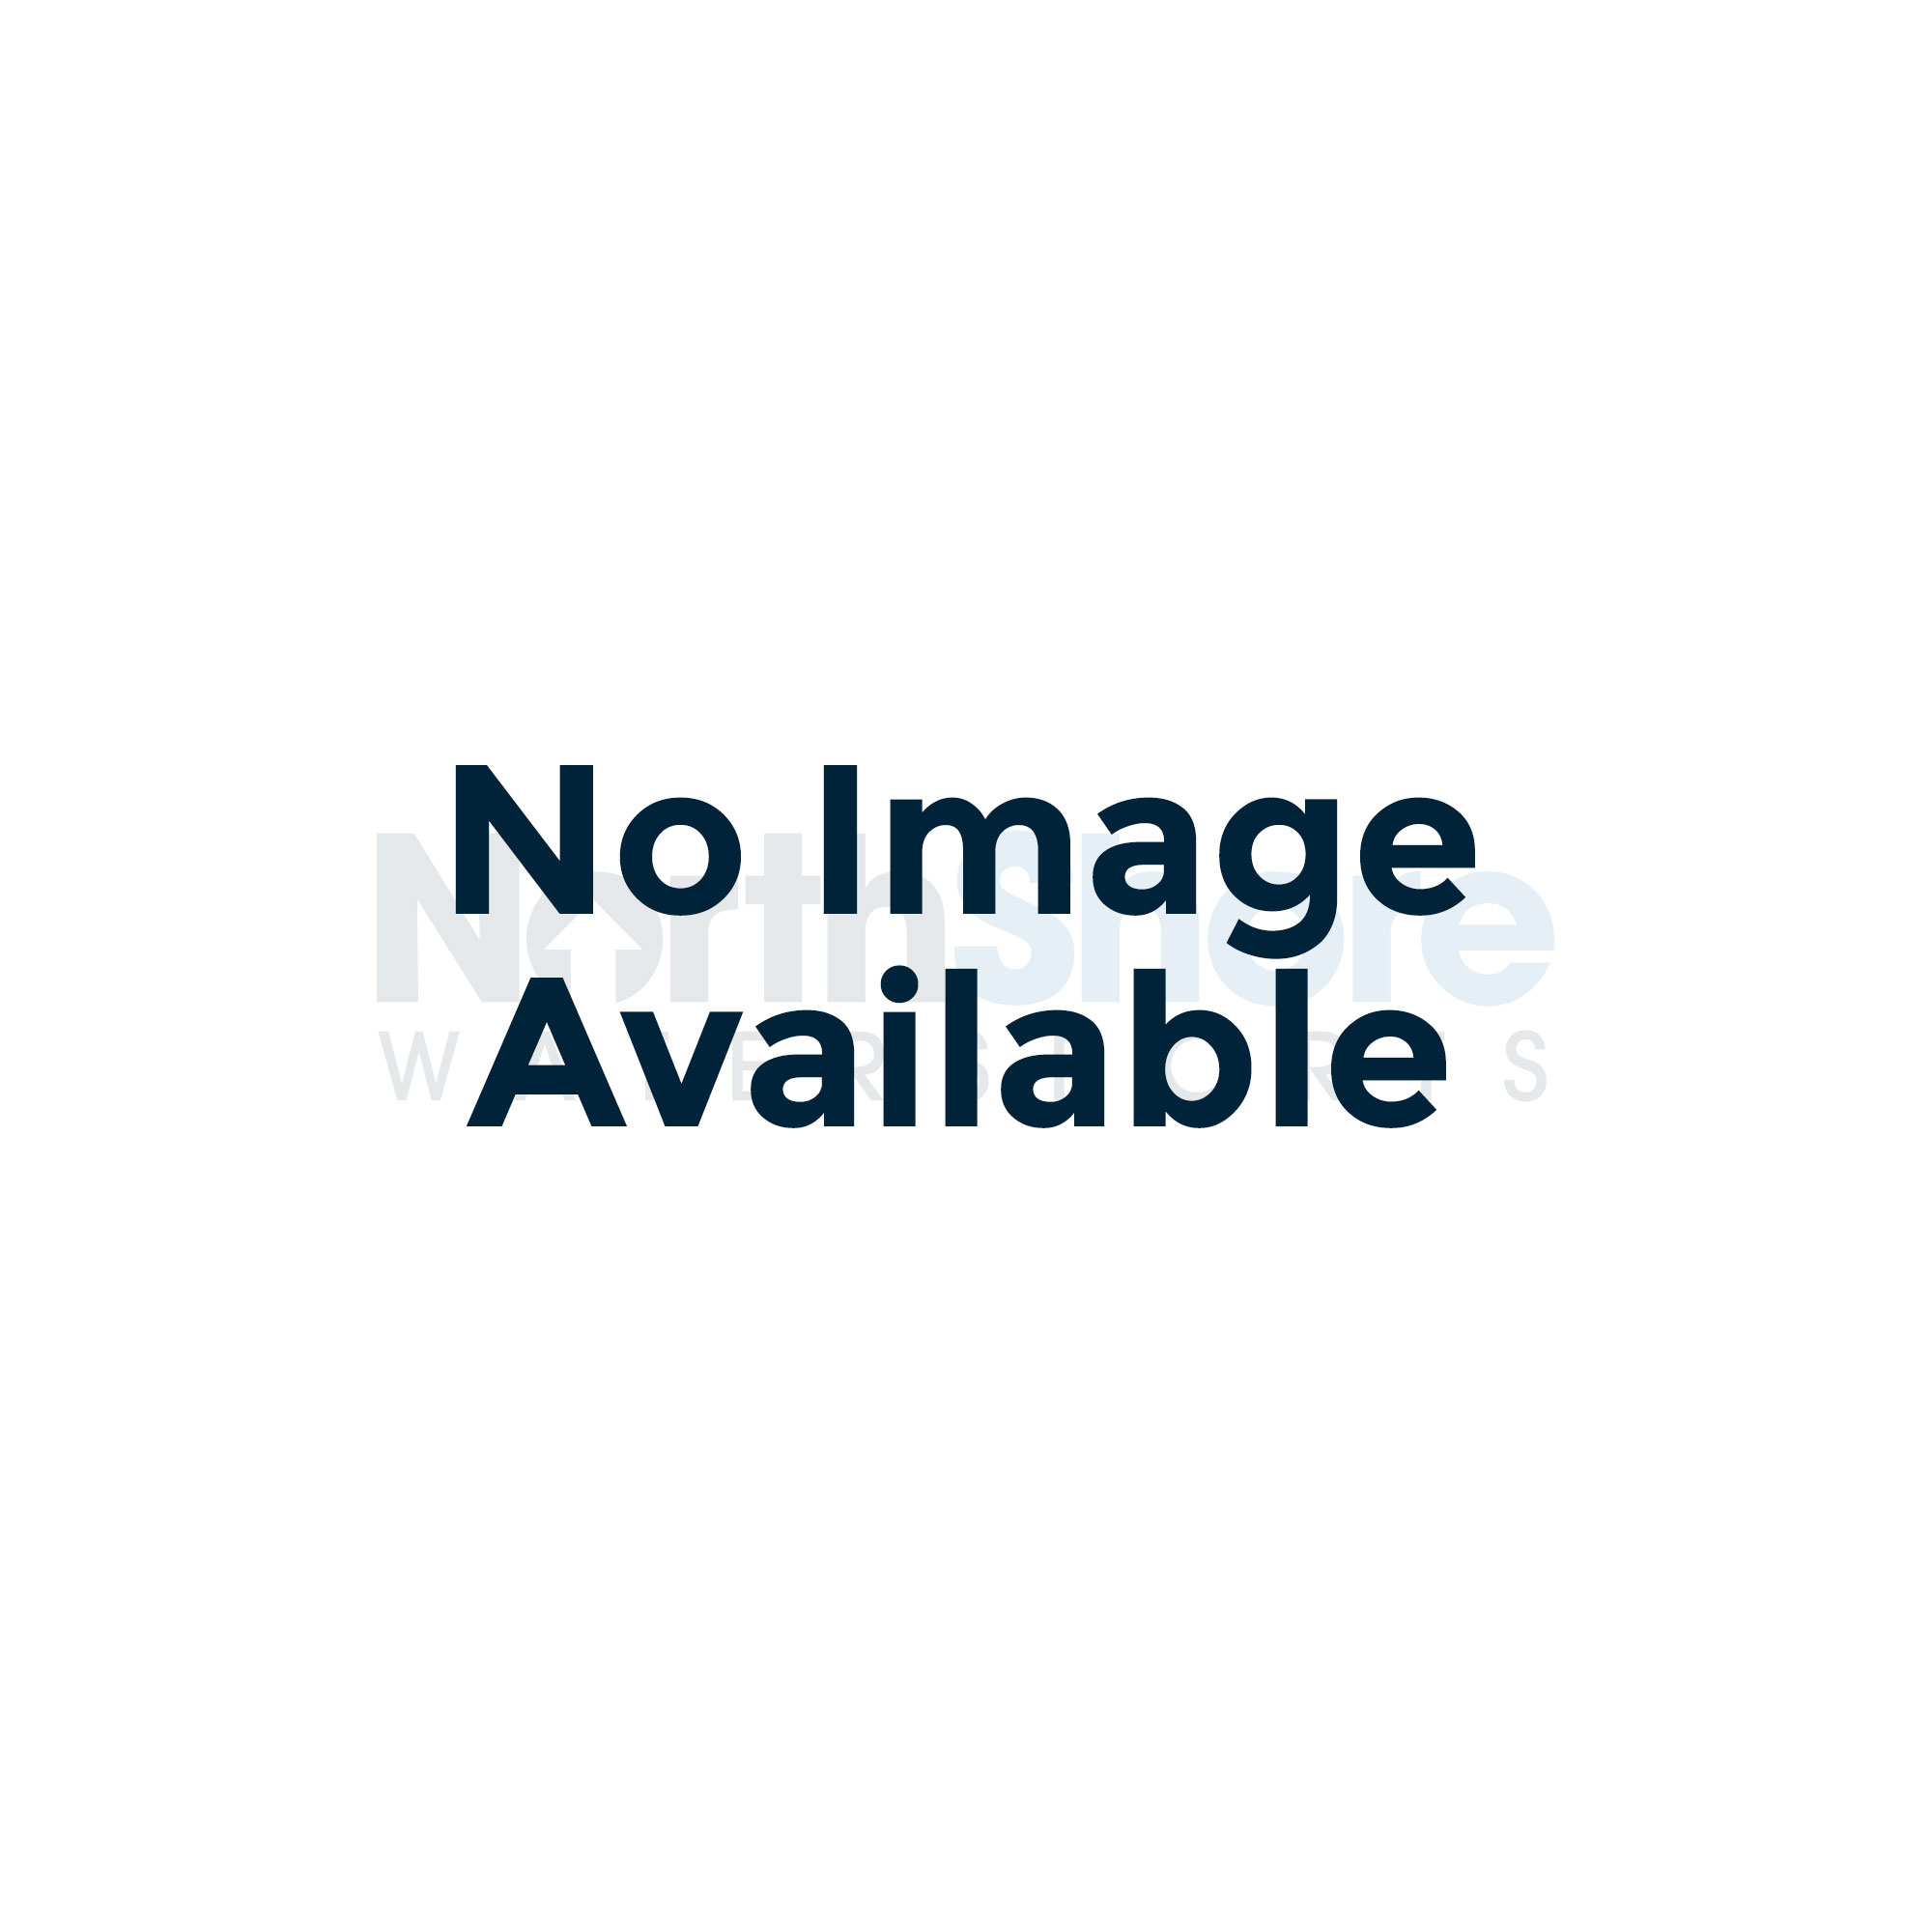 Axis-E 10.5 Touring/ Recreation kayak